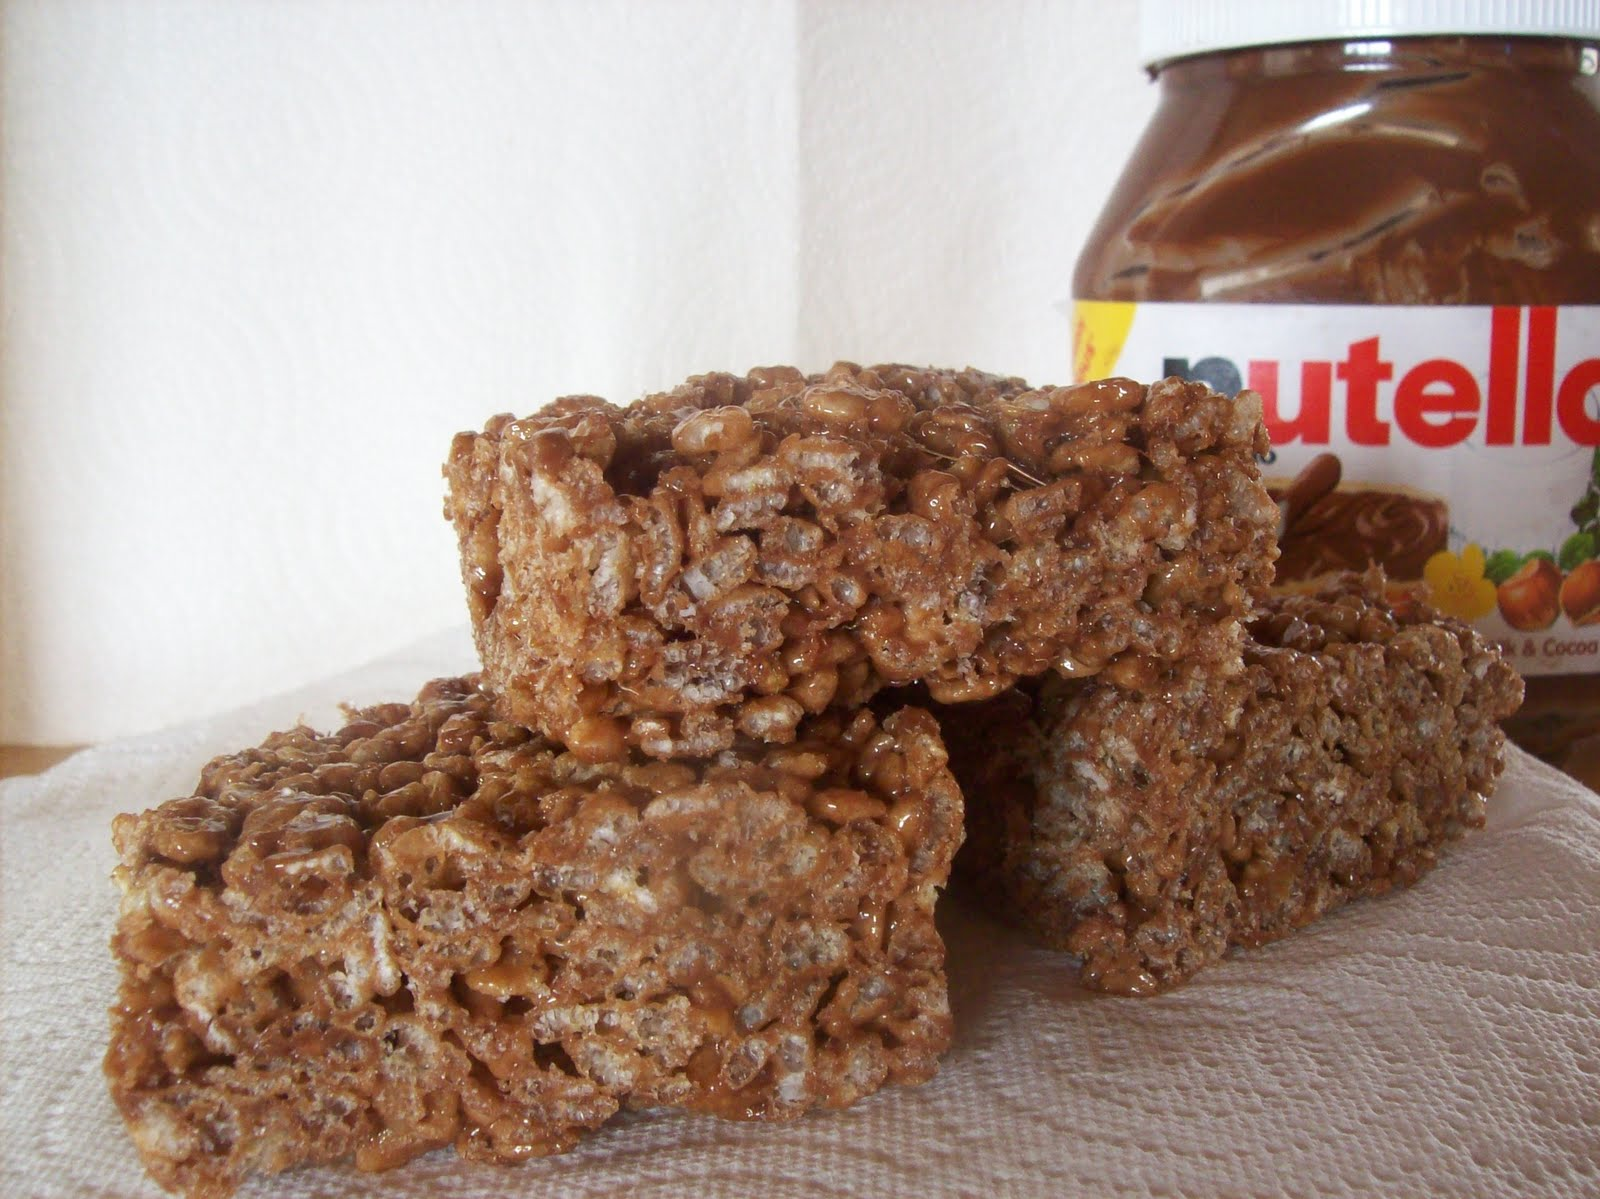 Delicious Discoveries: Nutella Rice Krispie Treats